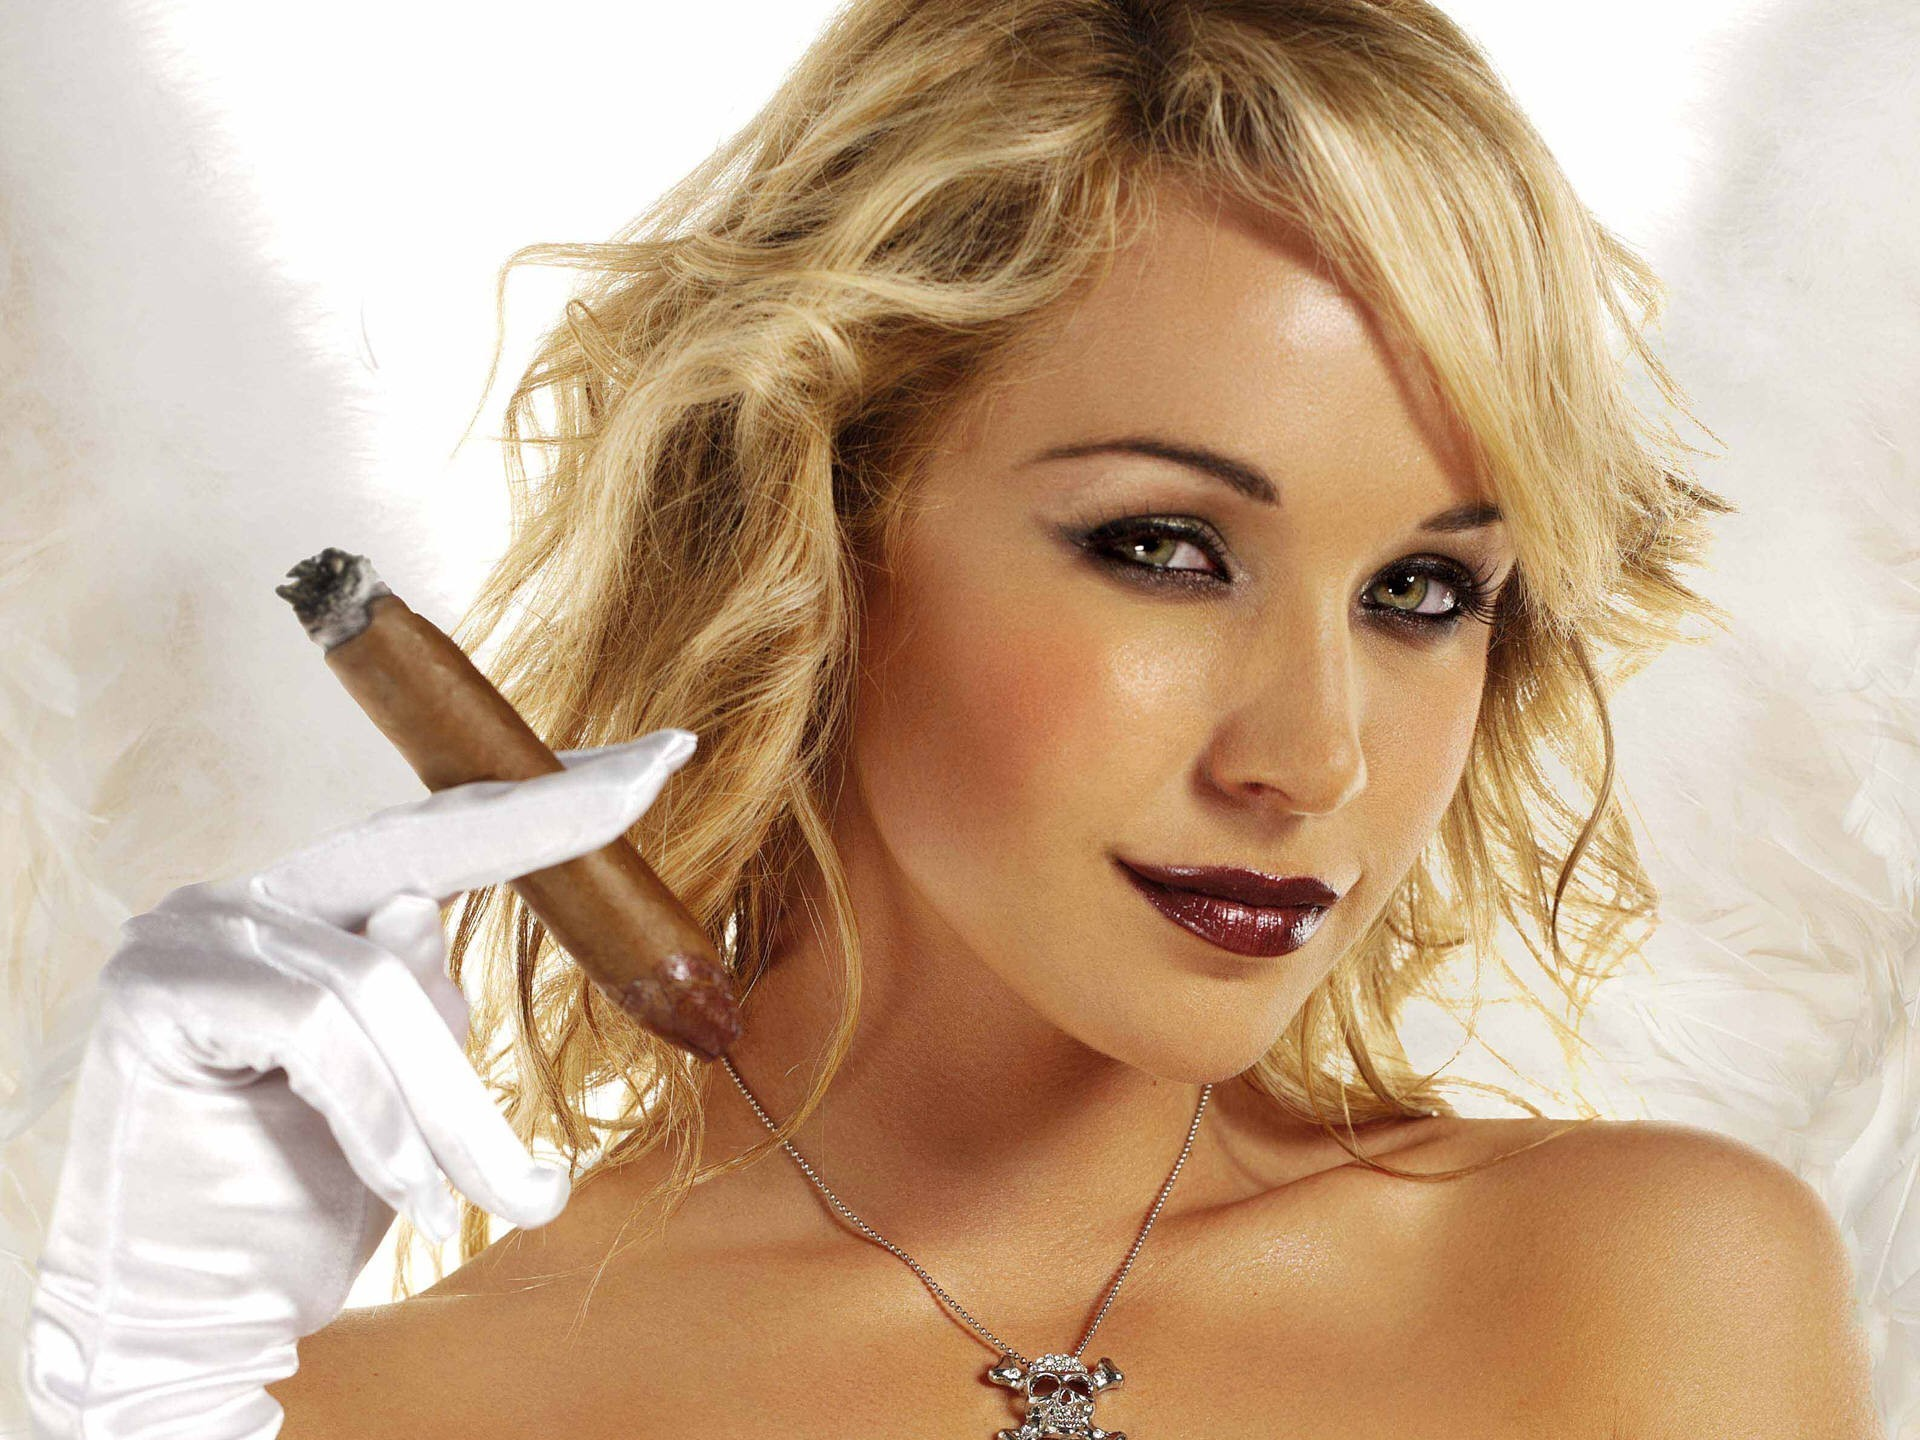 woman Emily Scott cigars HD Wallpaper